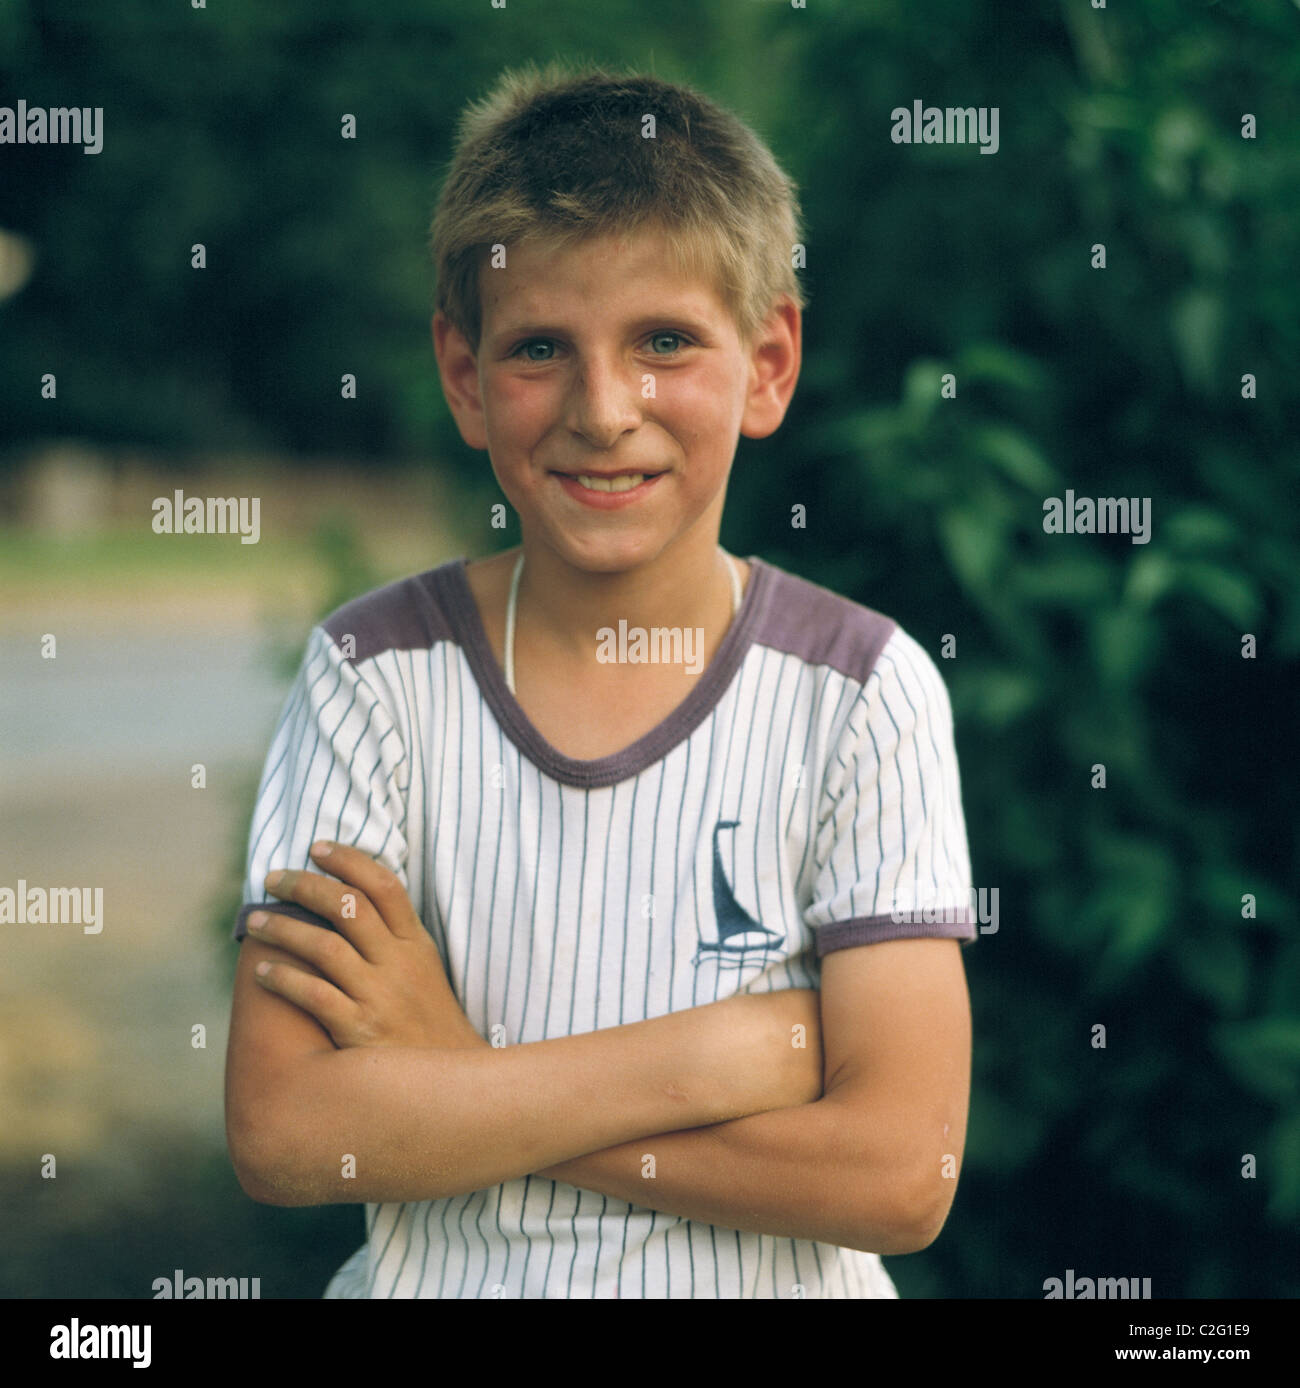 Eighties, people, child, boy, folded arms, portrait, aged 10 to 14 years, short hair Stock Photo